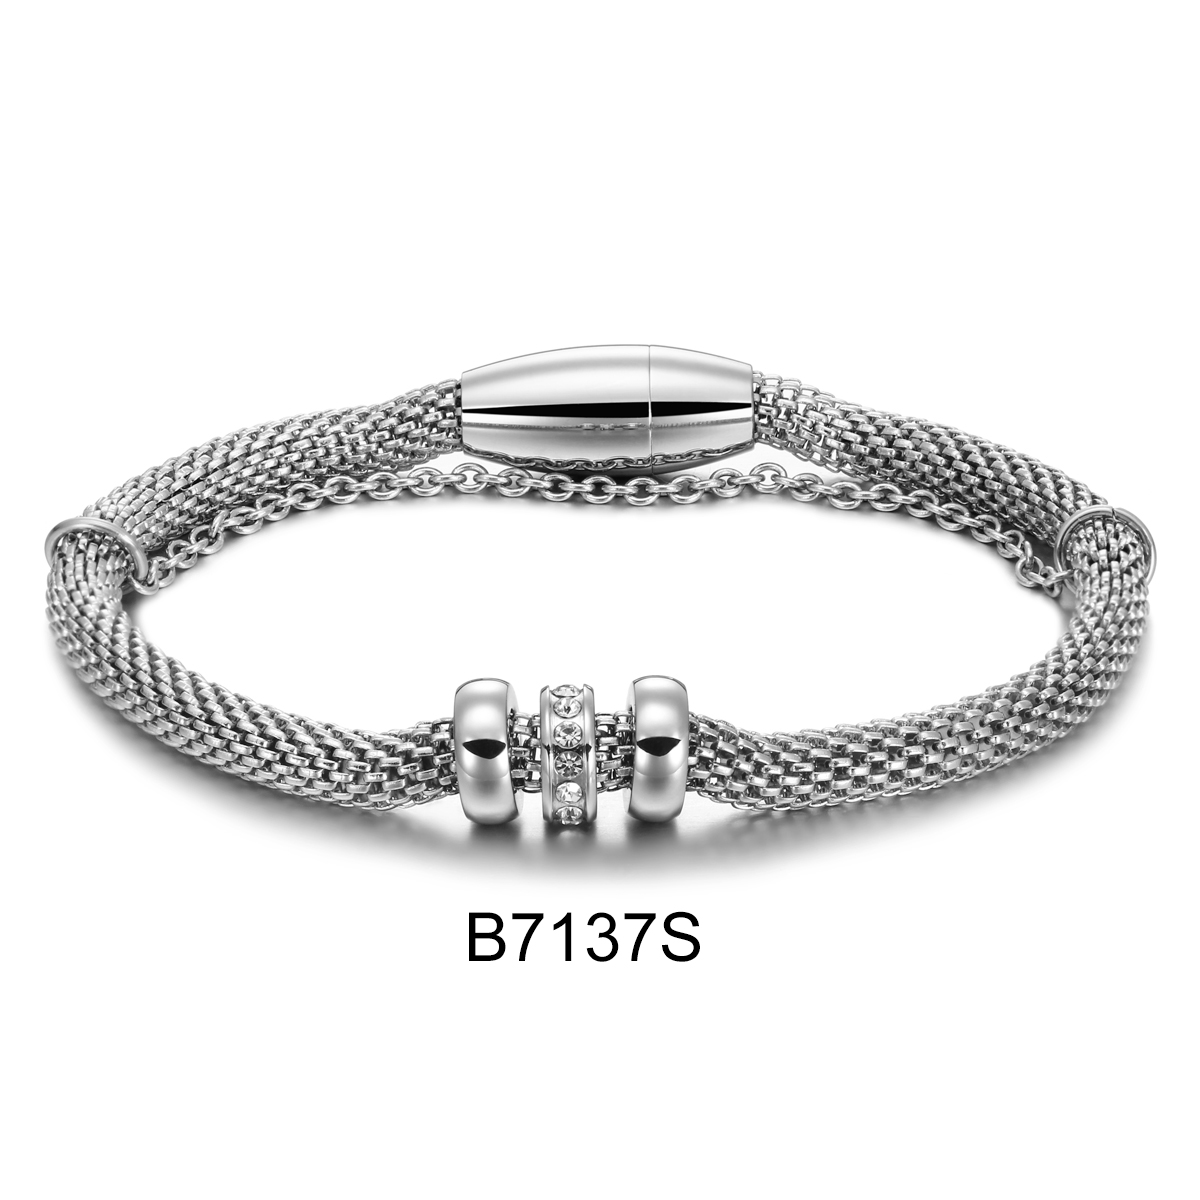 B7137S sliver double chain w...